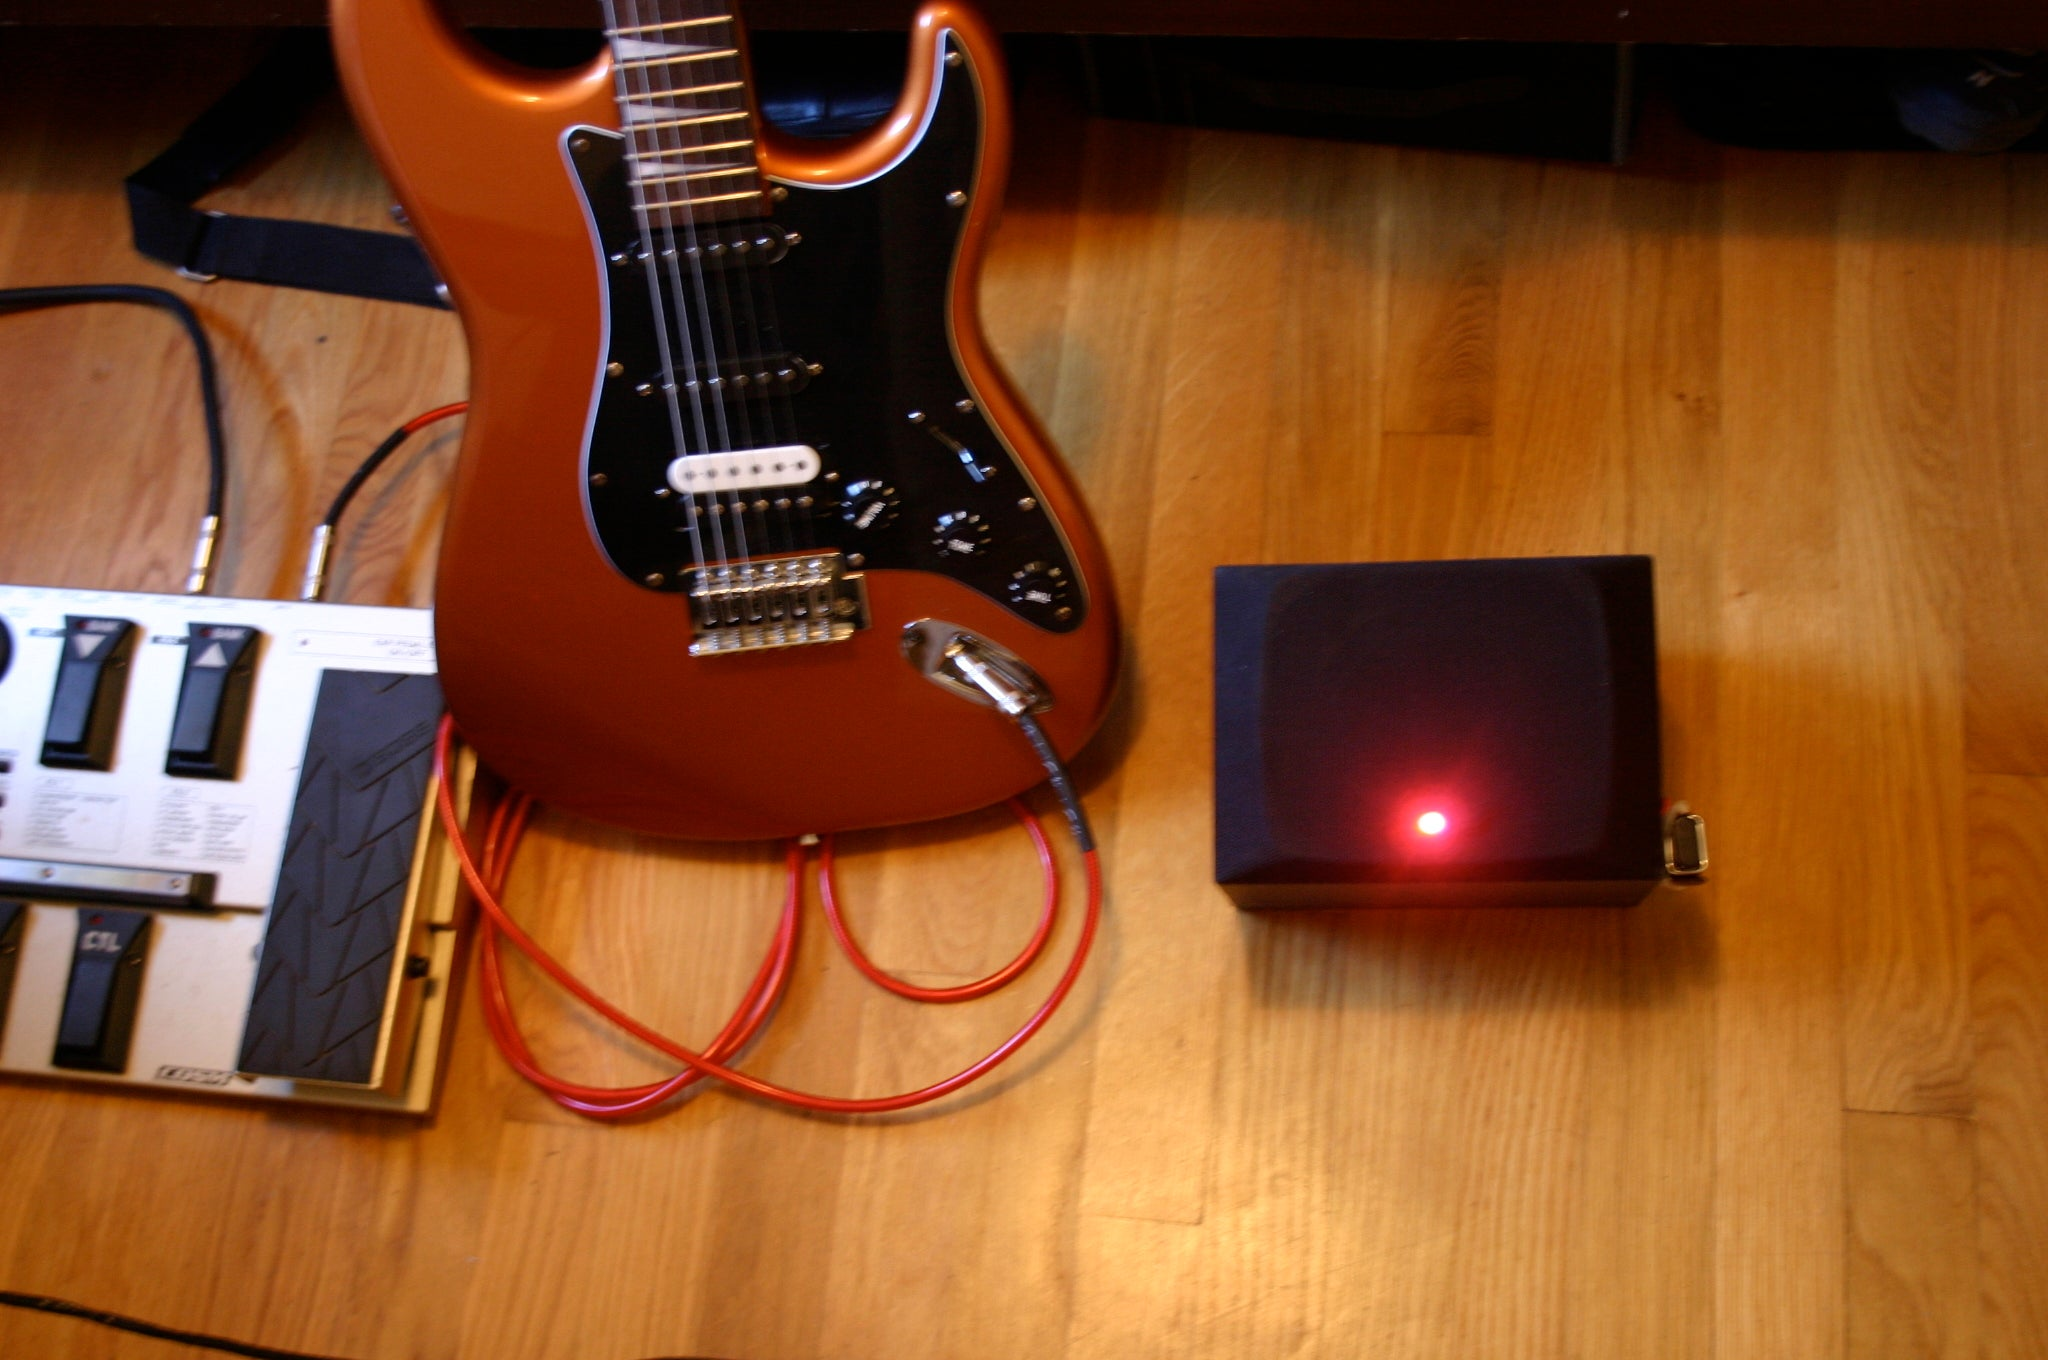 Portable Guitar Amp With Distortion Bass Amplifier 9v Lm386 Ic Diy Project We Build A Using This Basic Schematic 3 Steps